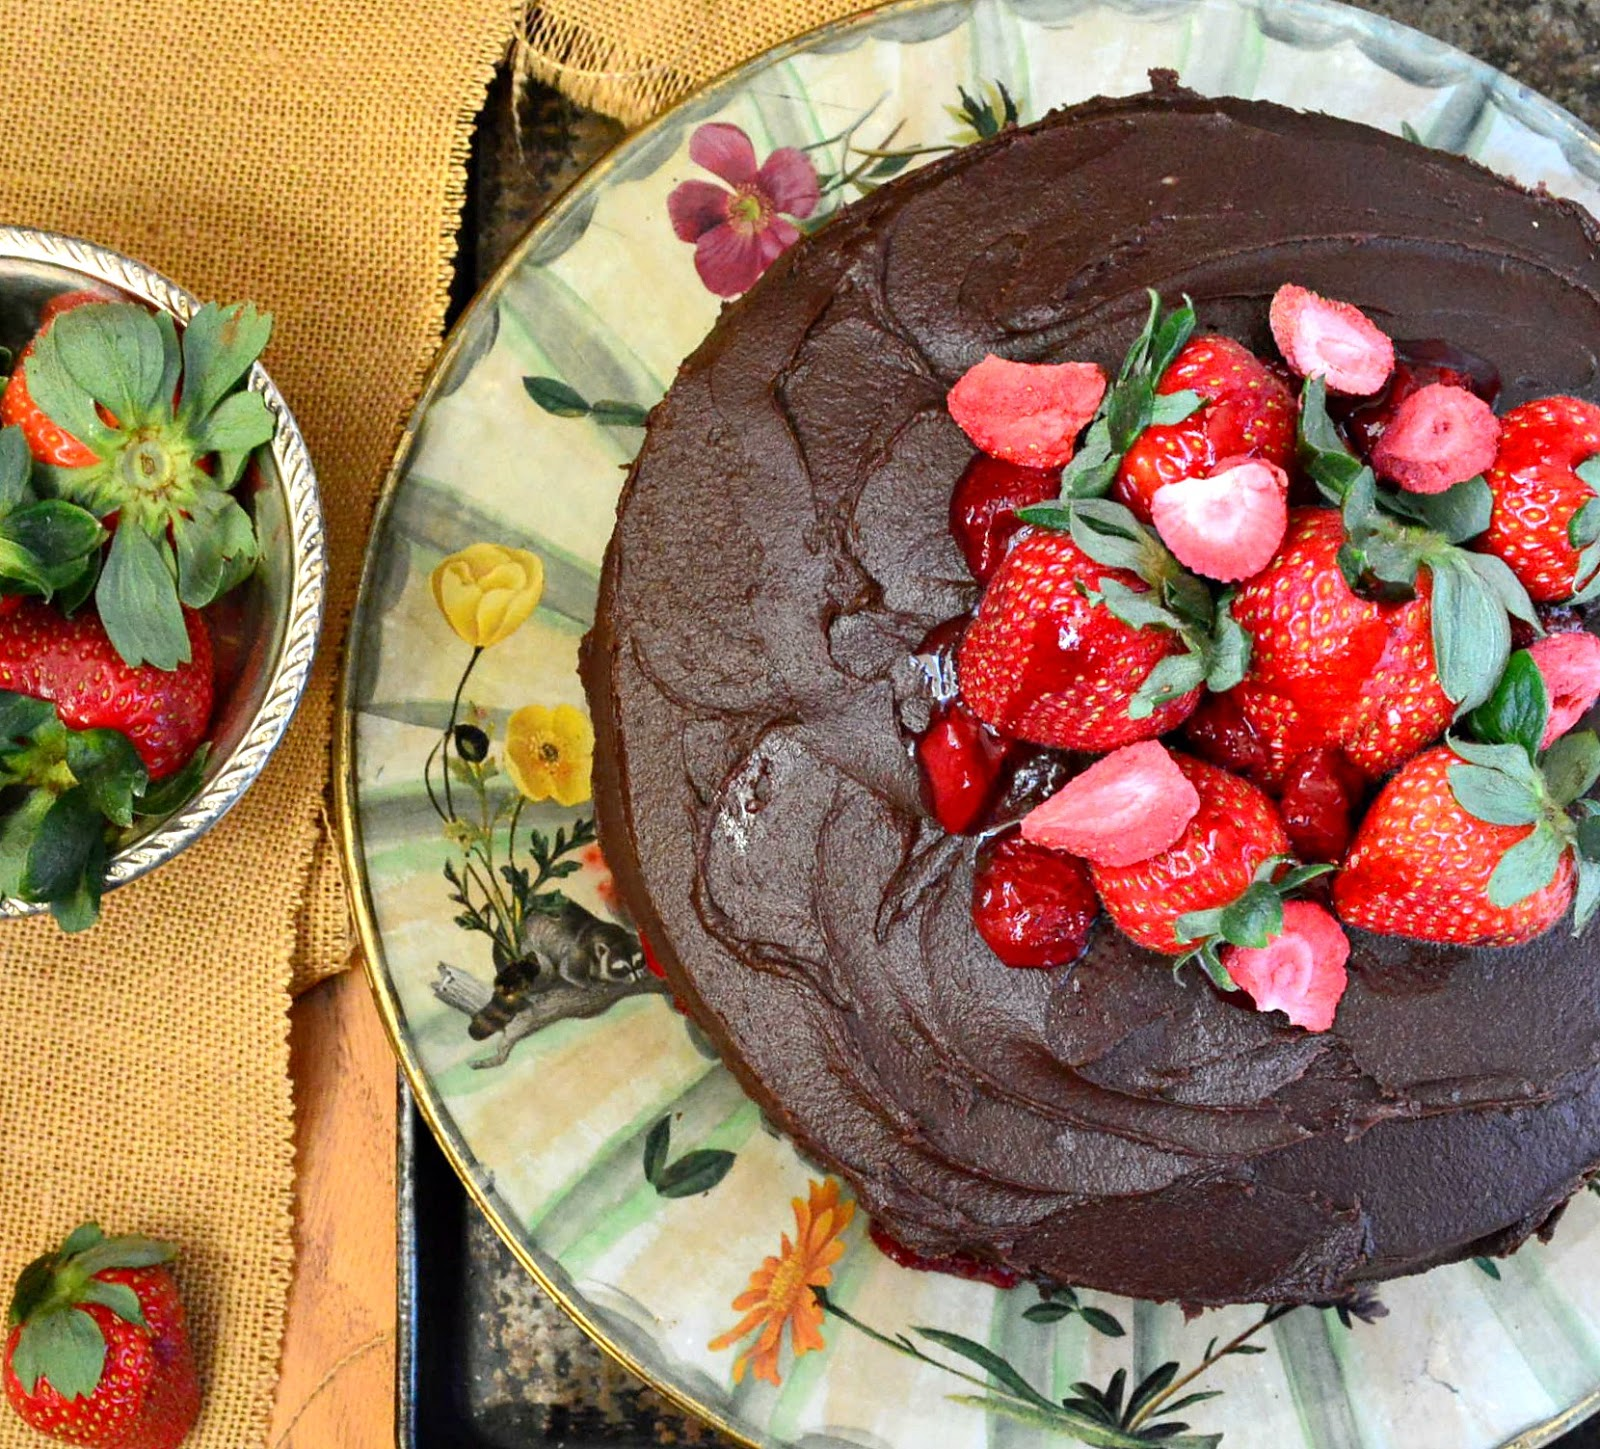 Chocolate Red Wine Cake is perfect for Spring. Filled with strawberries, this cake will soon be a classic! #ChocolateCake www.thisishowicook.com